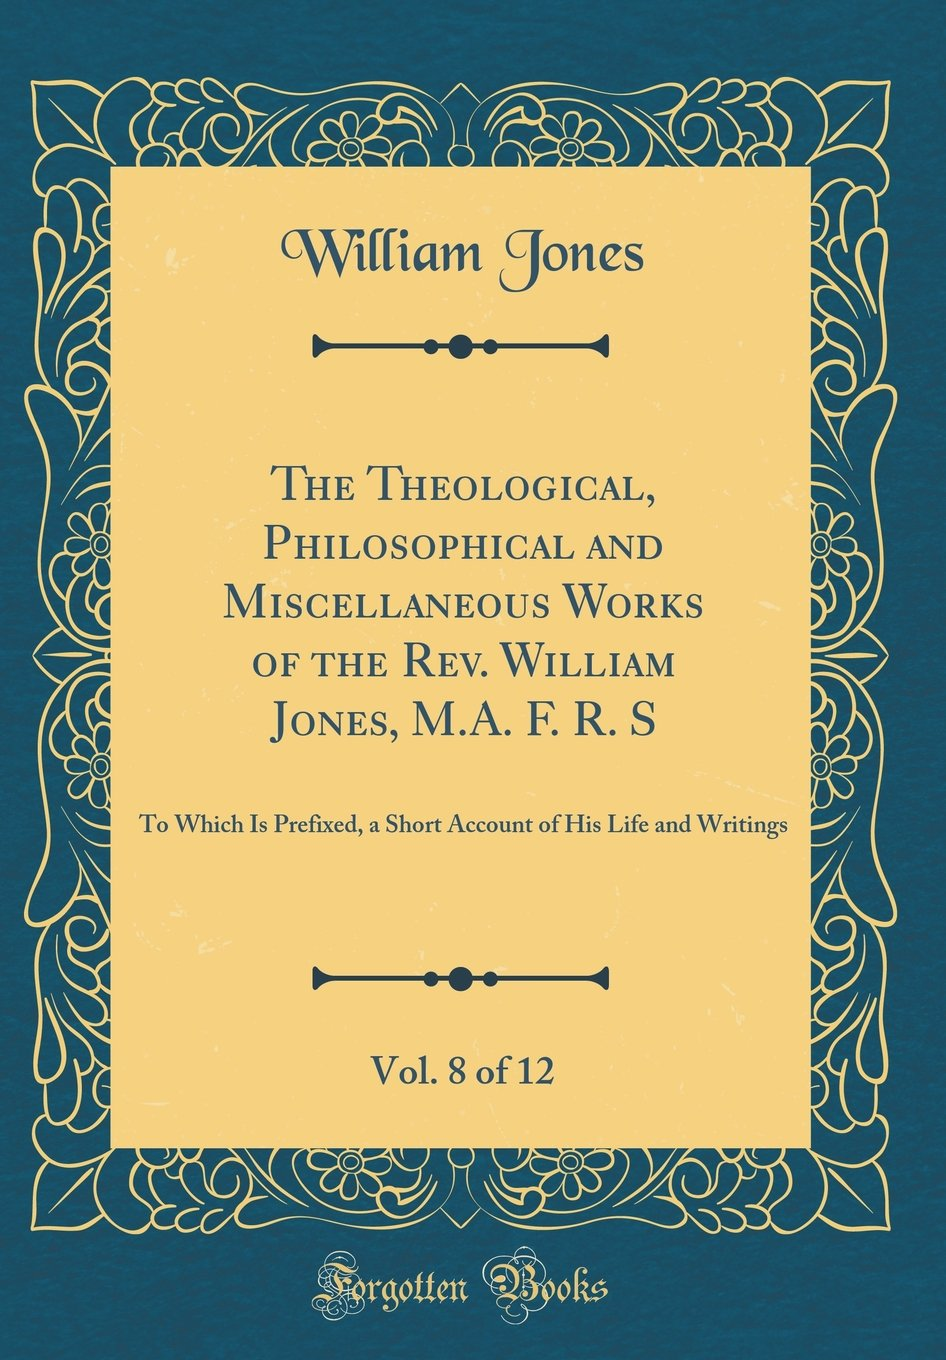 The Theological, Philosophical and Miscellaneous Works of the Rev. William Jones, M.A. F. R. S, Vol. 8 of 12: To Which Is Prefixed, a Short Account of His Life and Writings (Classic Reprint) pdf epub